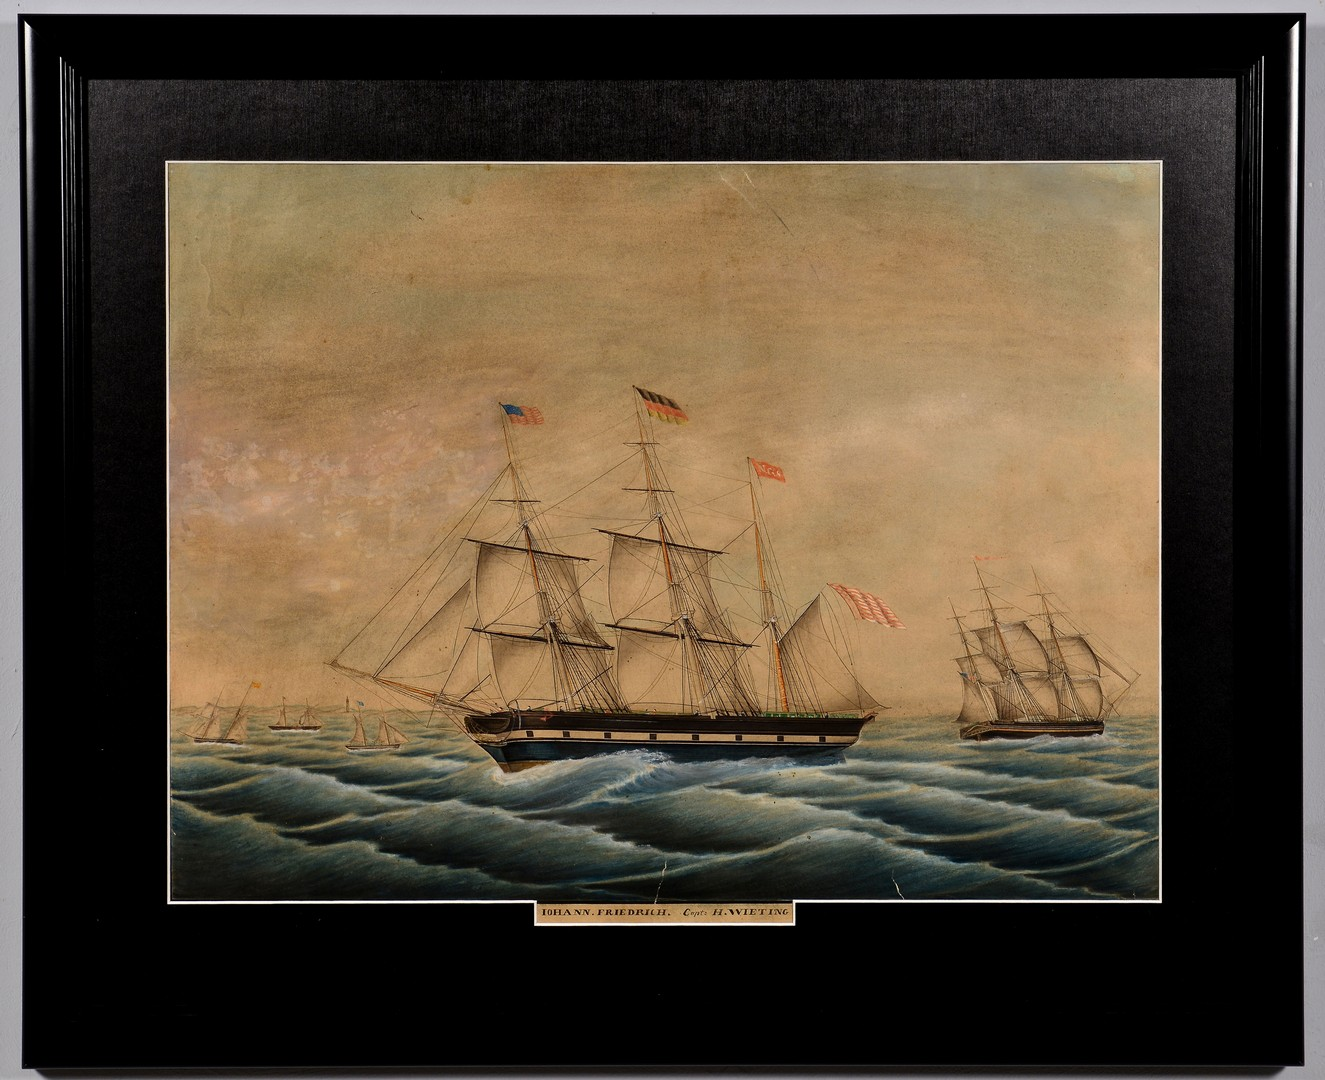 Lot 234: Ship watercolor, Lohann. Friedrich.